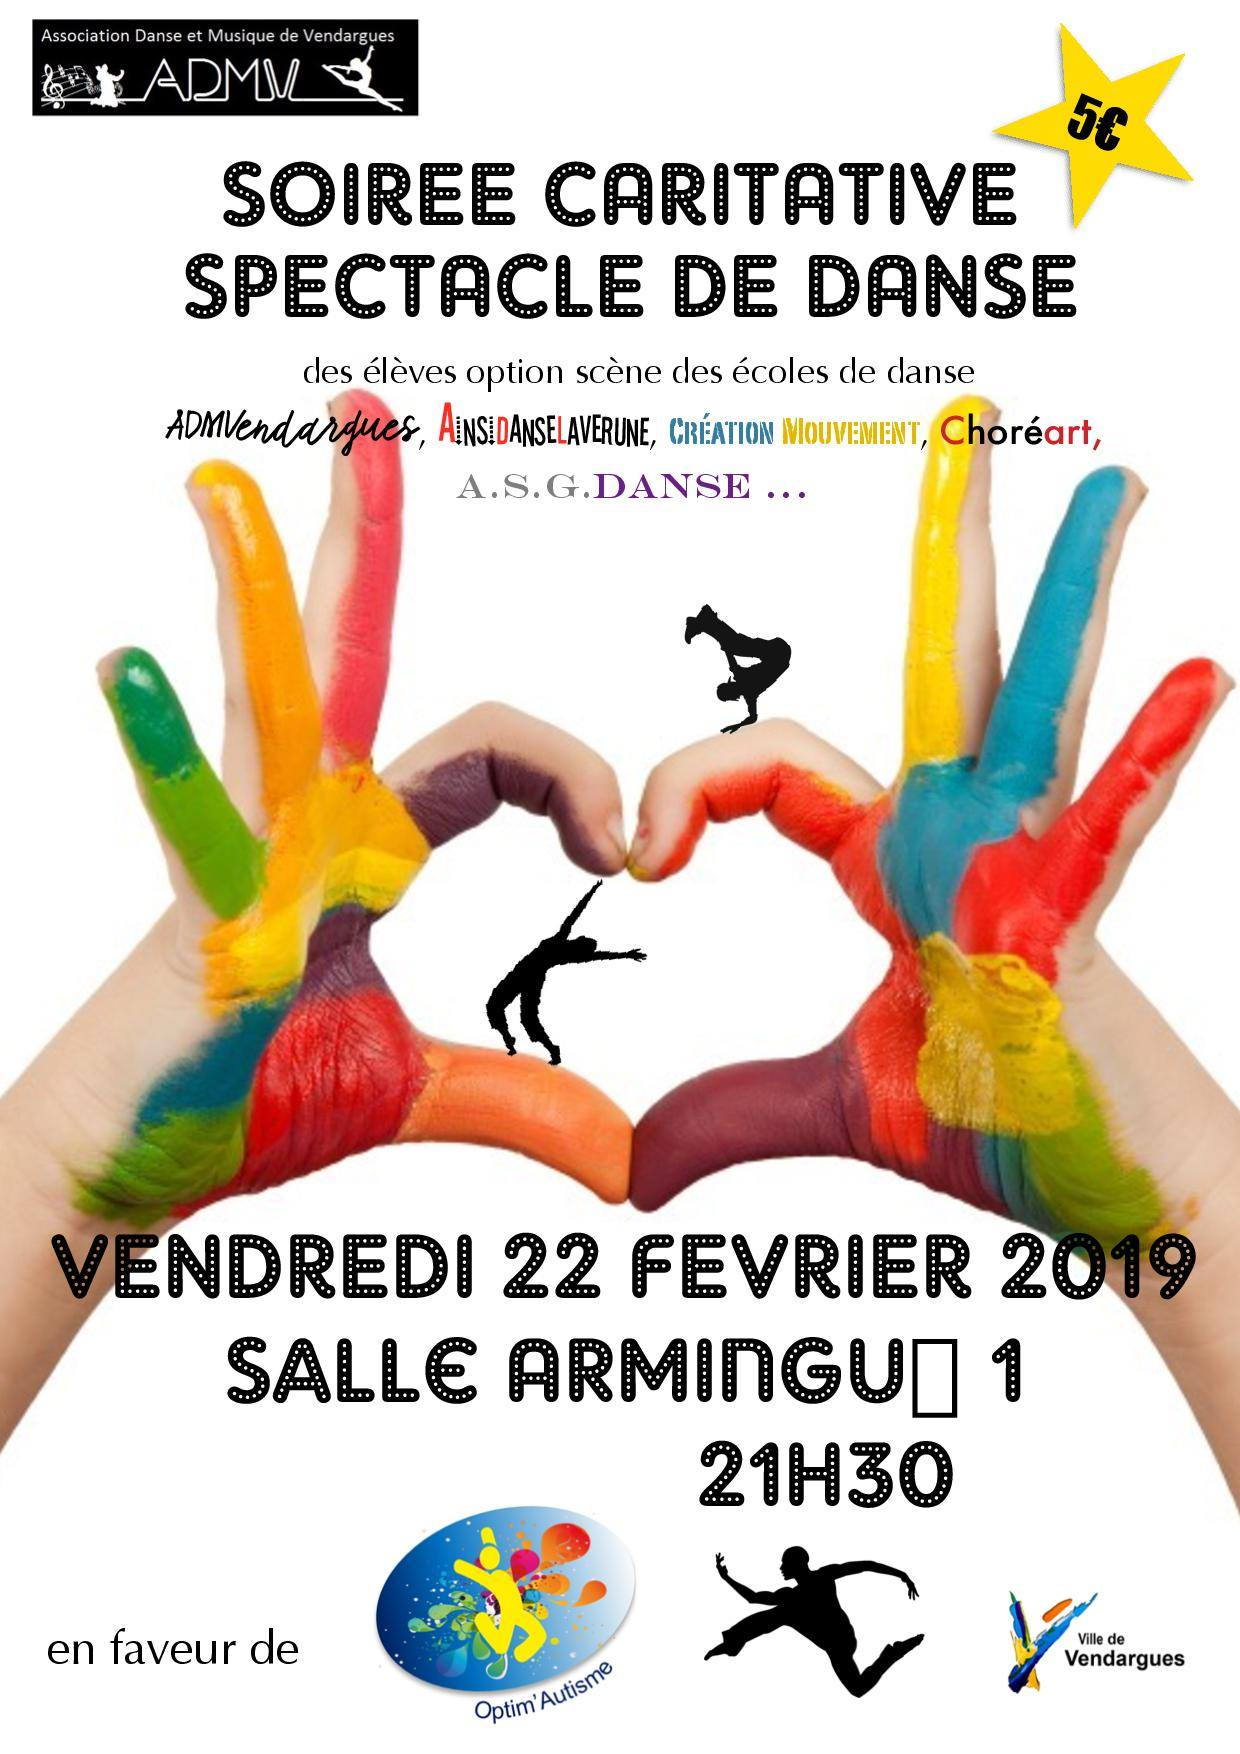 2019 02 22 Danse spectacle